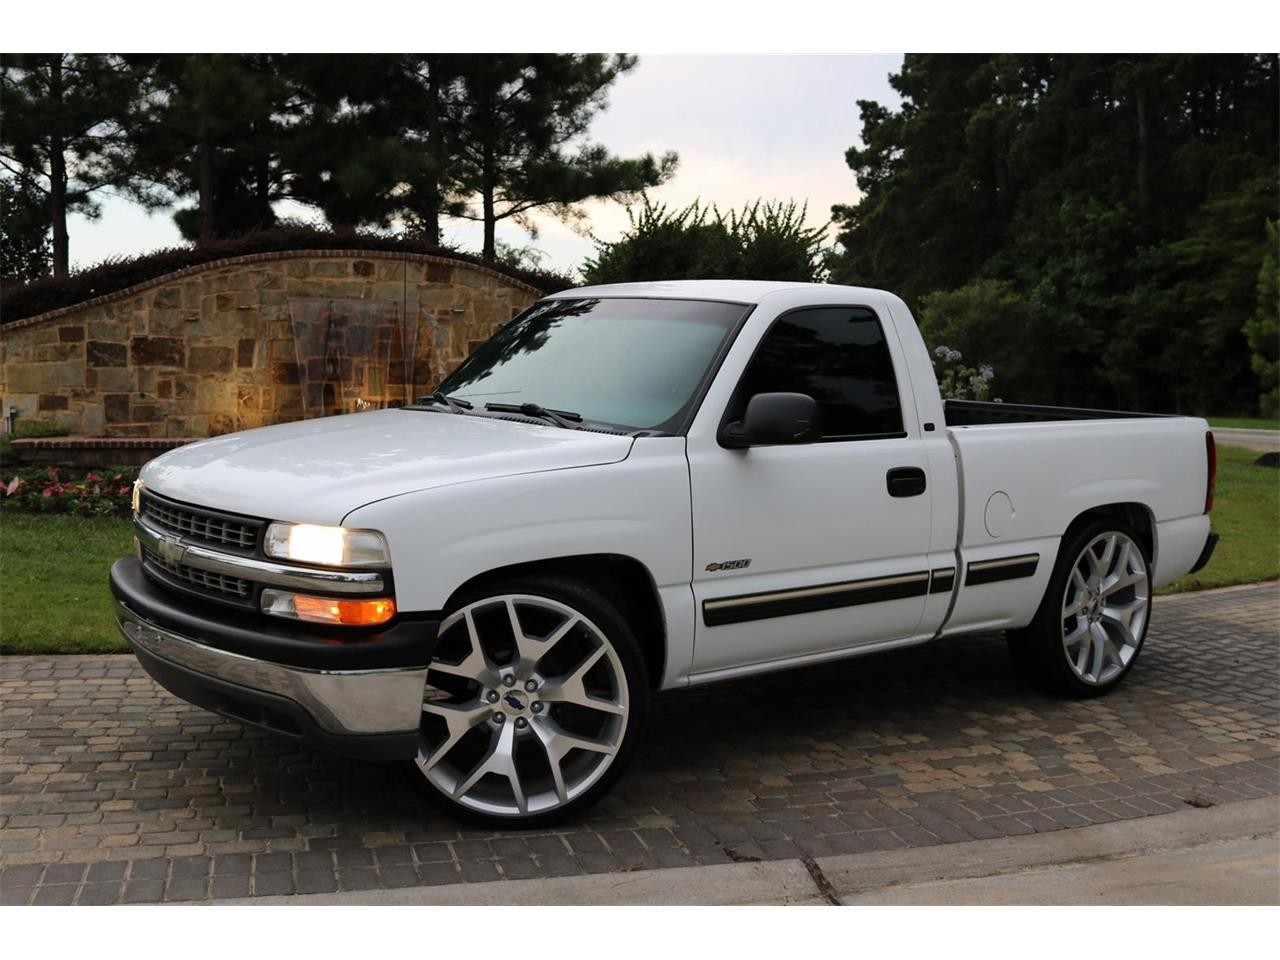 Large Picture of '00 Chevrolet Silverado located in Texas Offered by Texas Trucks and Classics - PS94